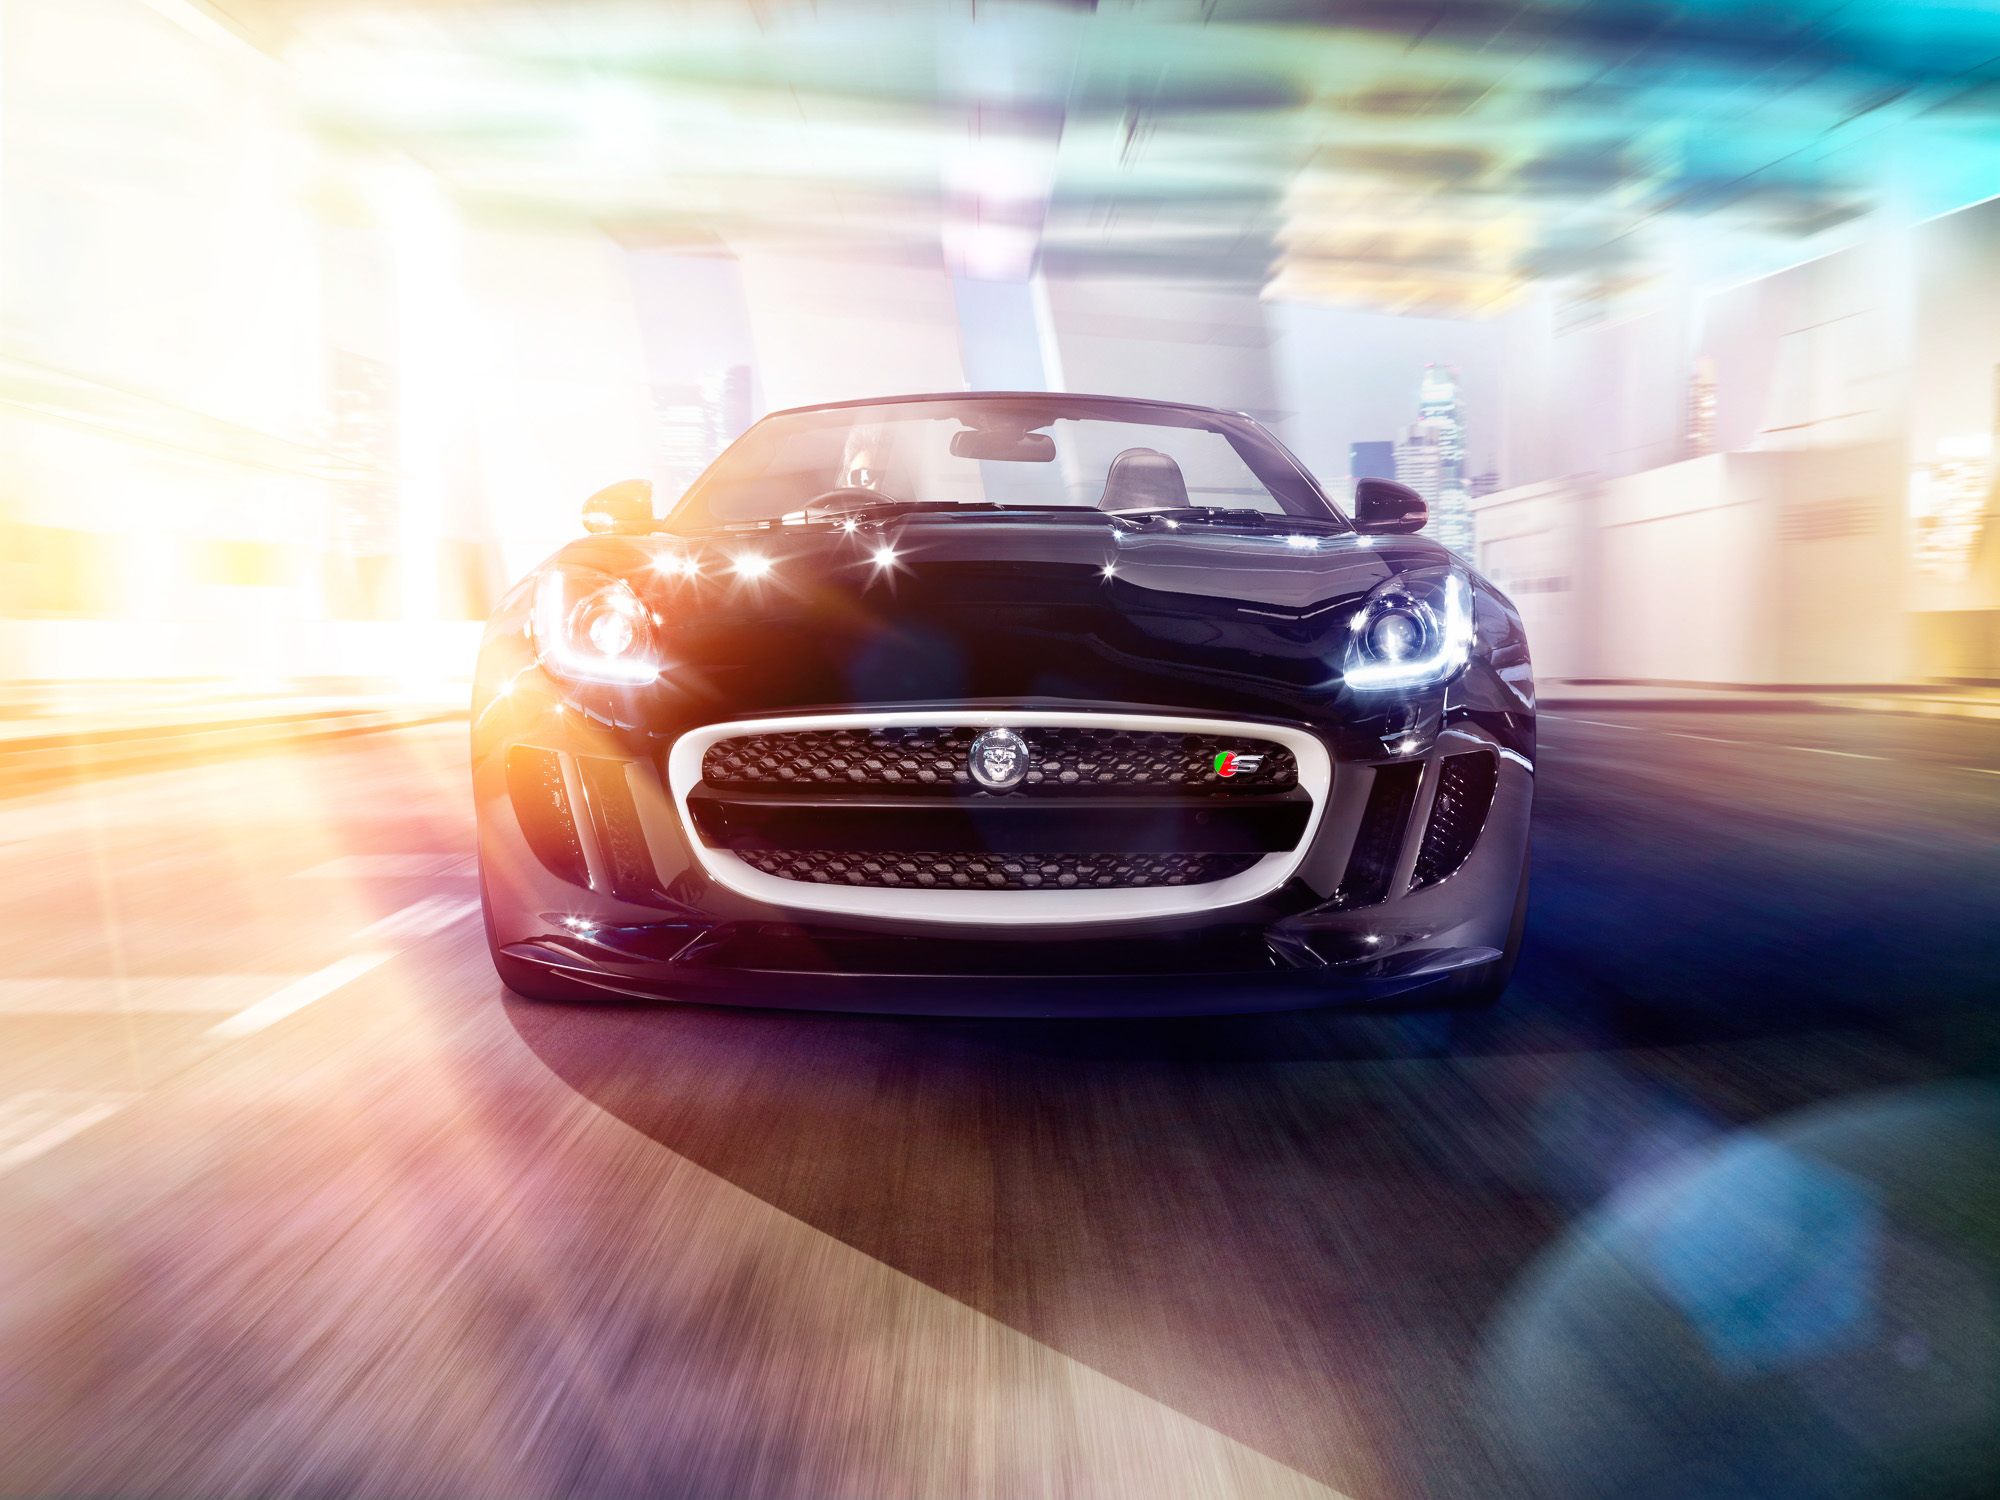 migs-foto-cgi-hong-kong-car-automotive-photography-photographer-Prestige-Jag-FType-Front-Night-Motion-Colour-2K